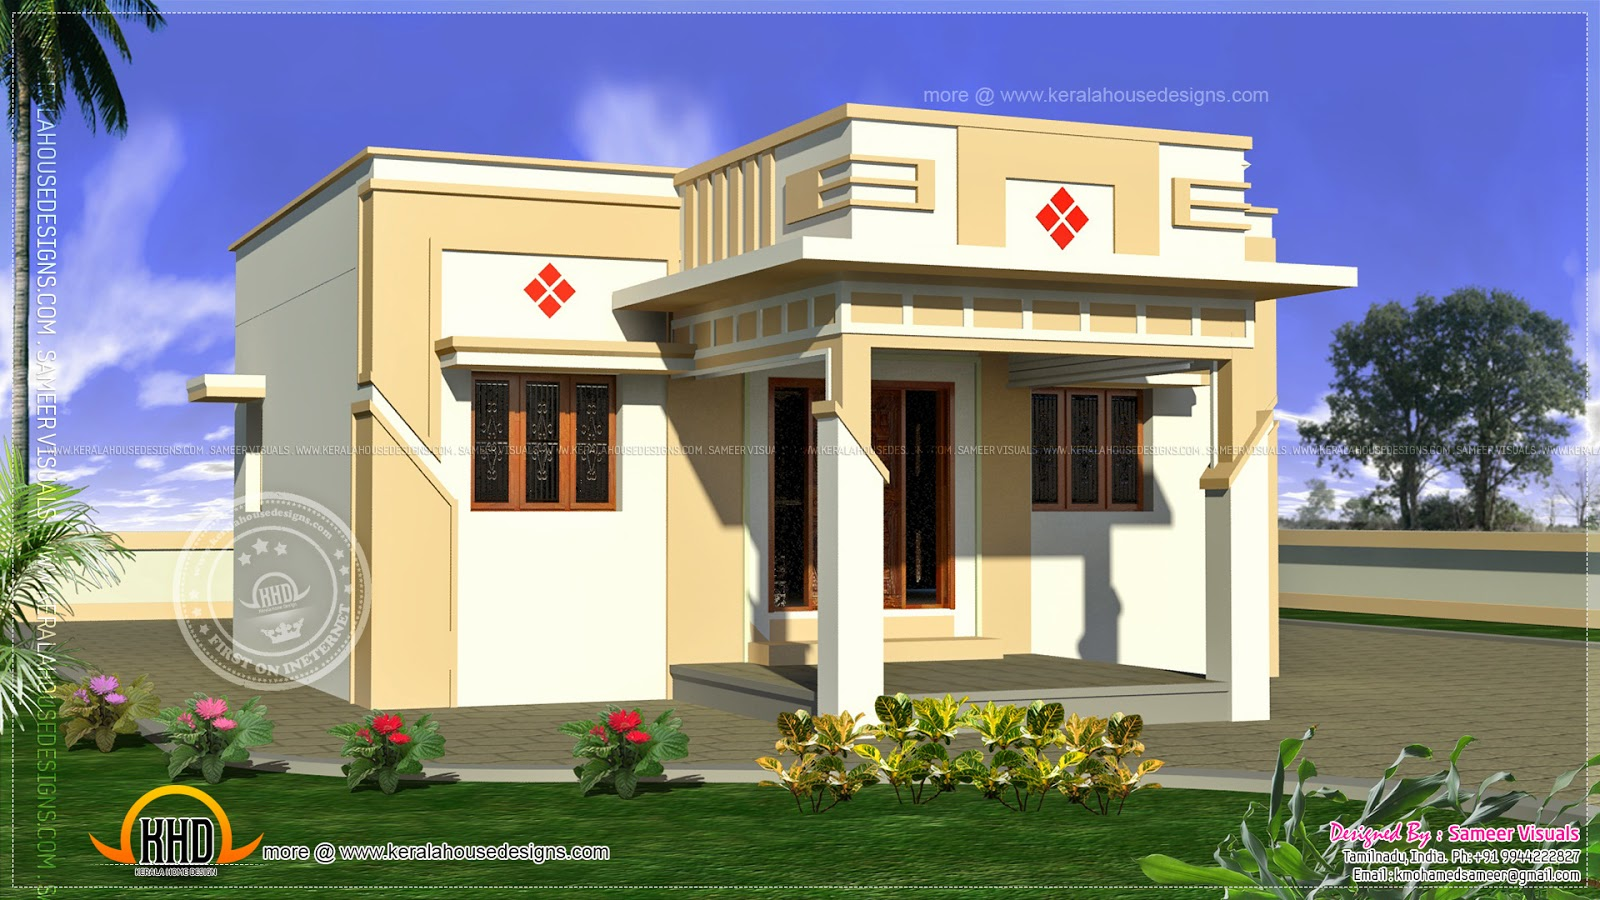 Low cost tamilnadu house kerala home design and floor plans for House structure design in india